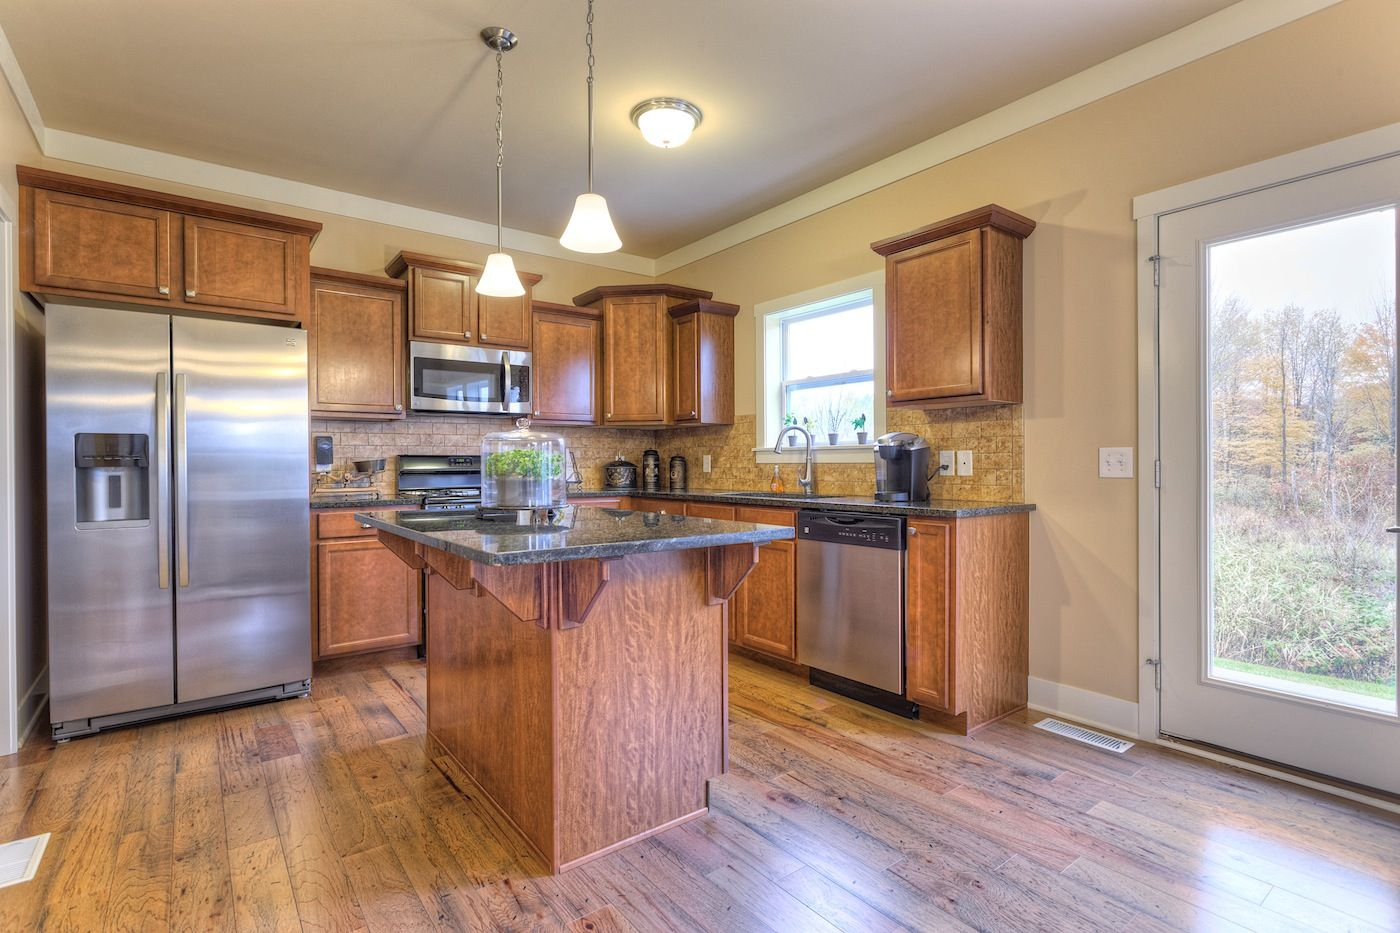 Kitchen featured in the Traditions 2200 V8.0b By Allen Edwin Homes in Elkhart-Goshen, IN